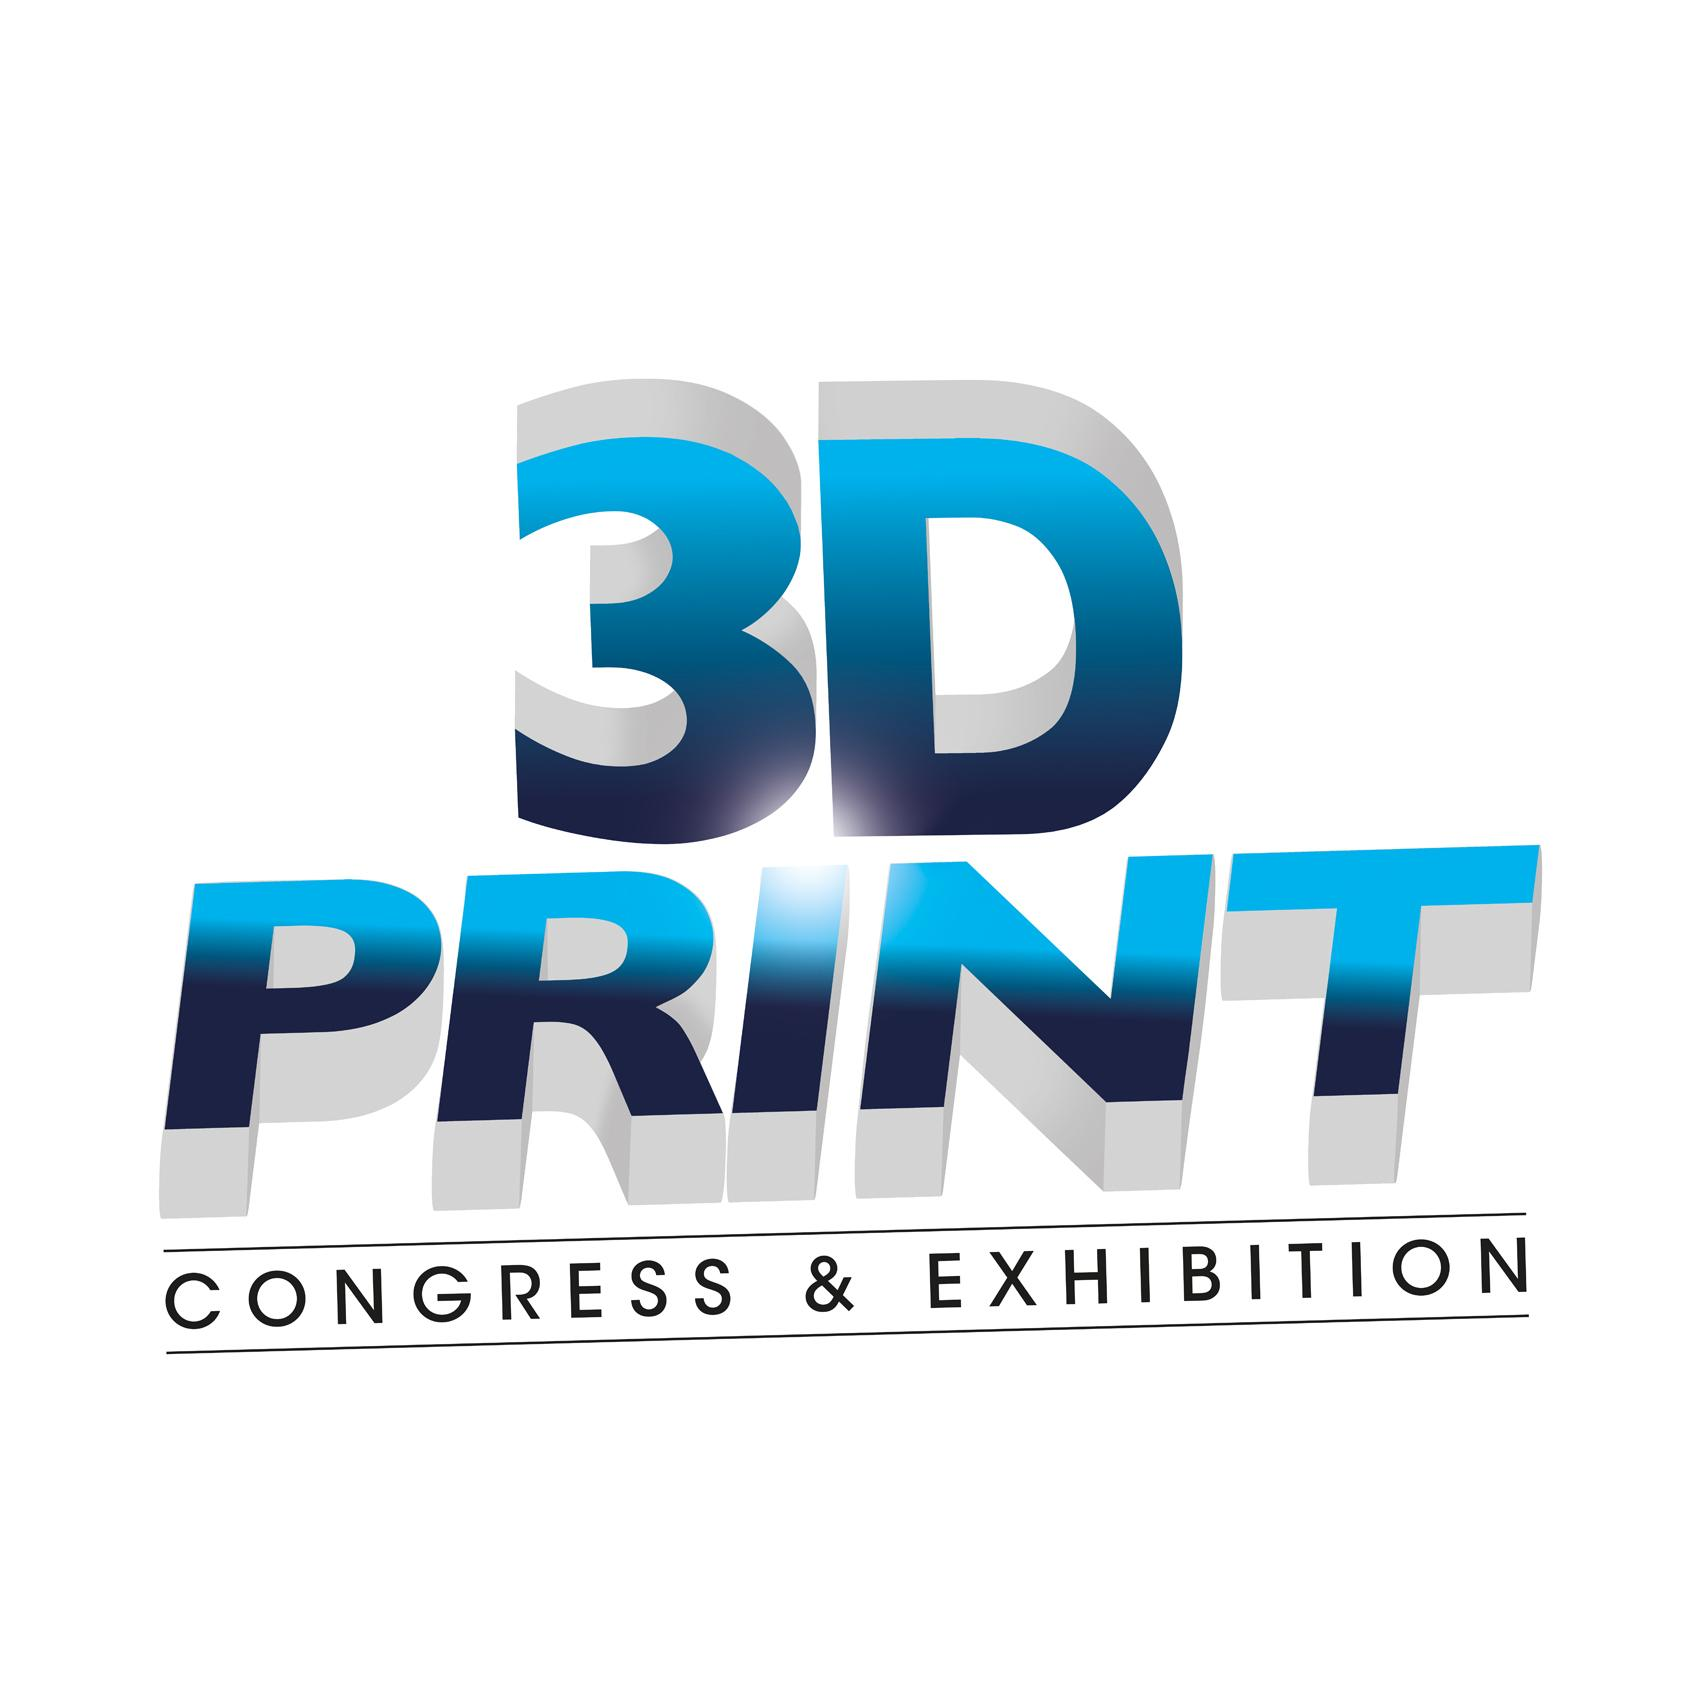 3D print - congress & exhibition